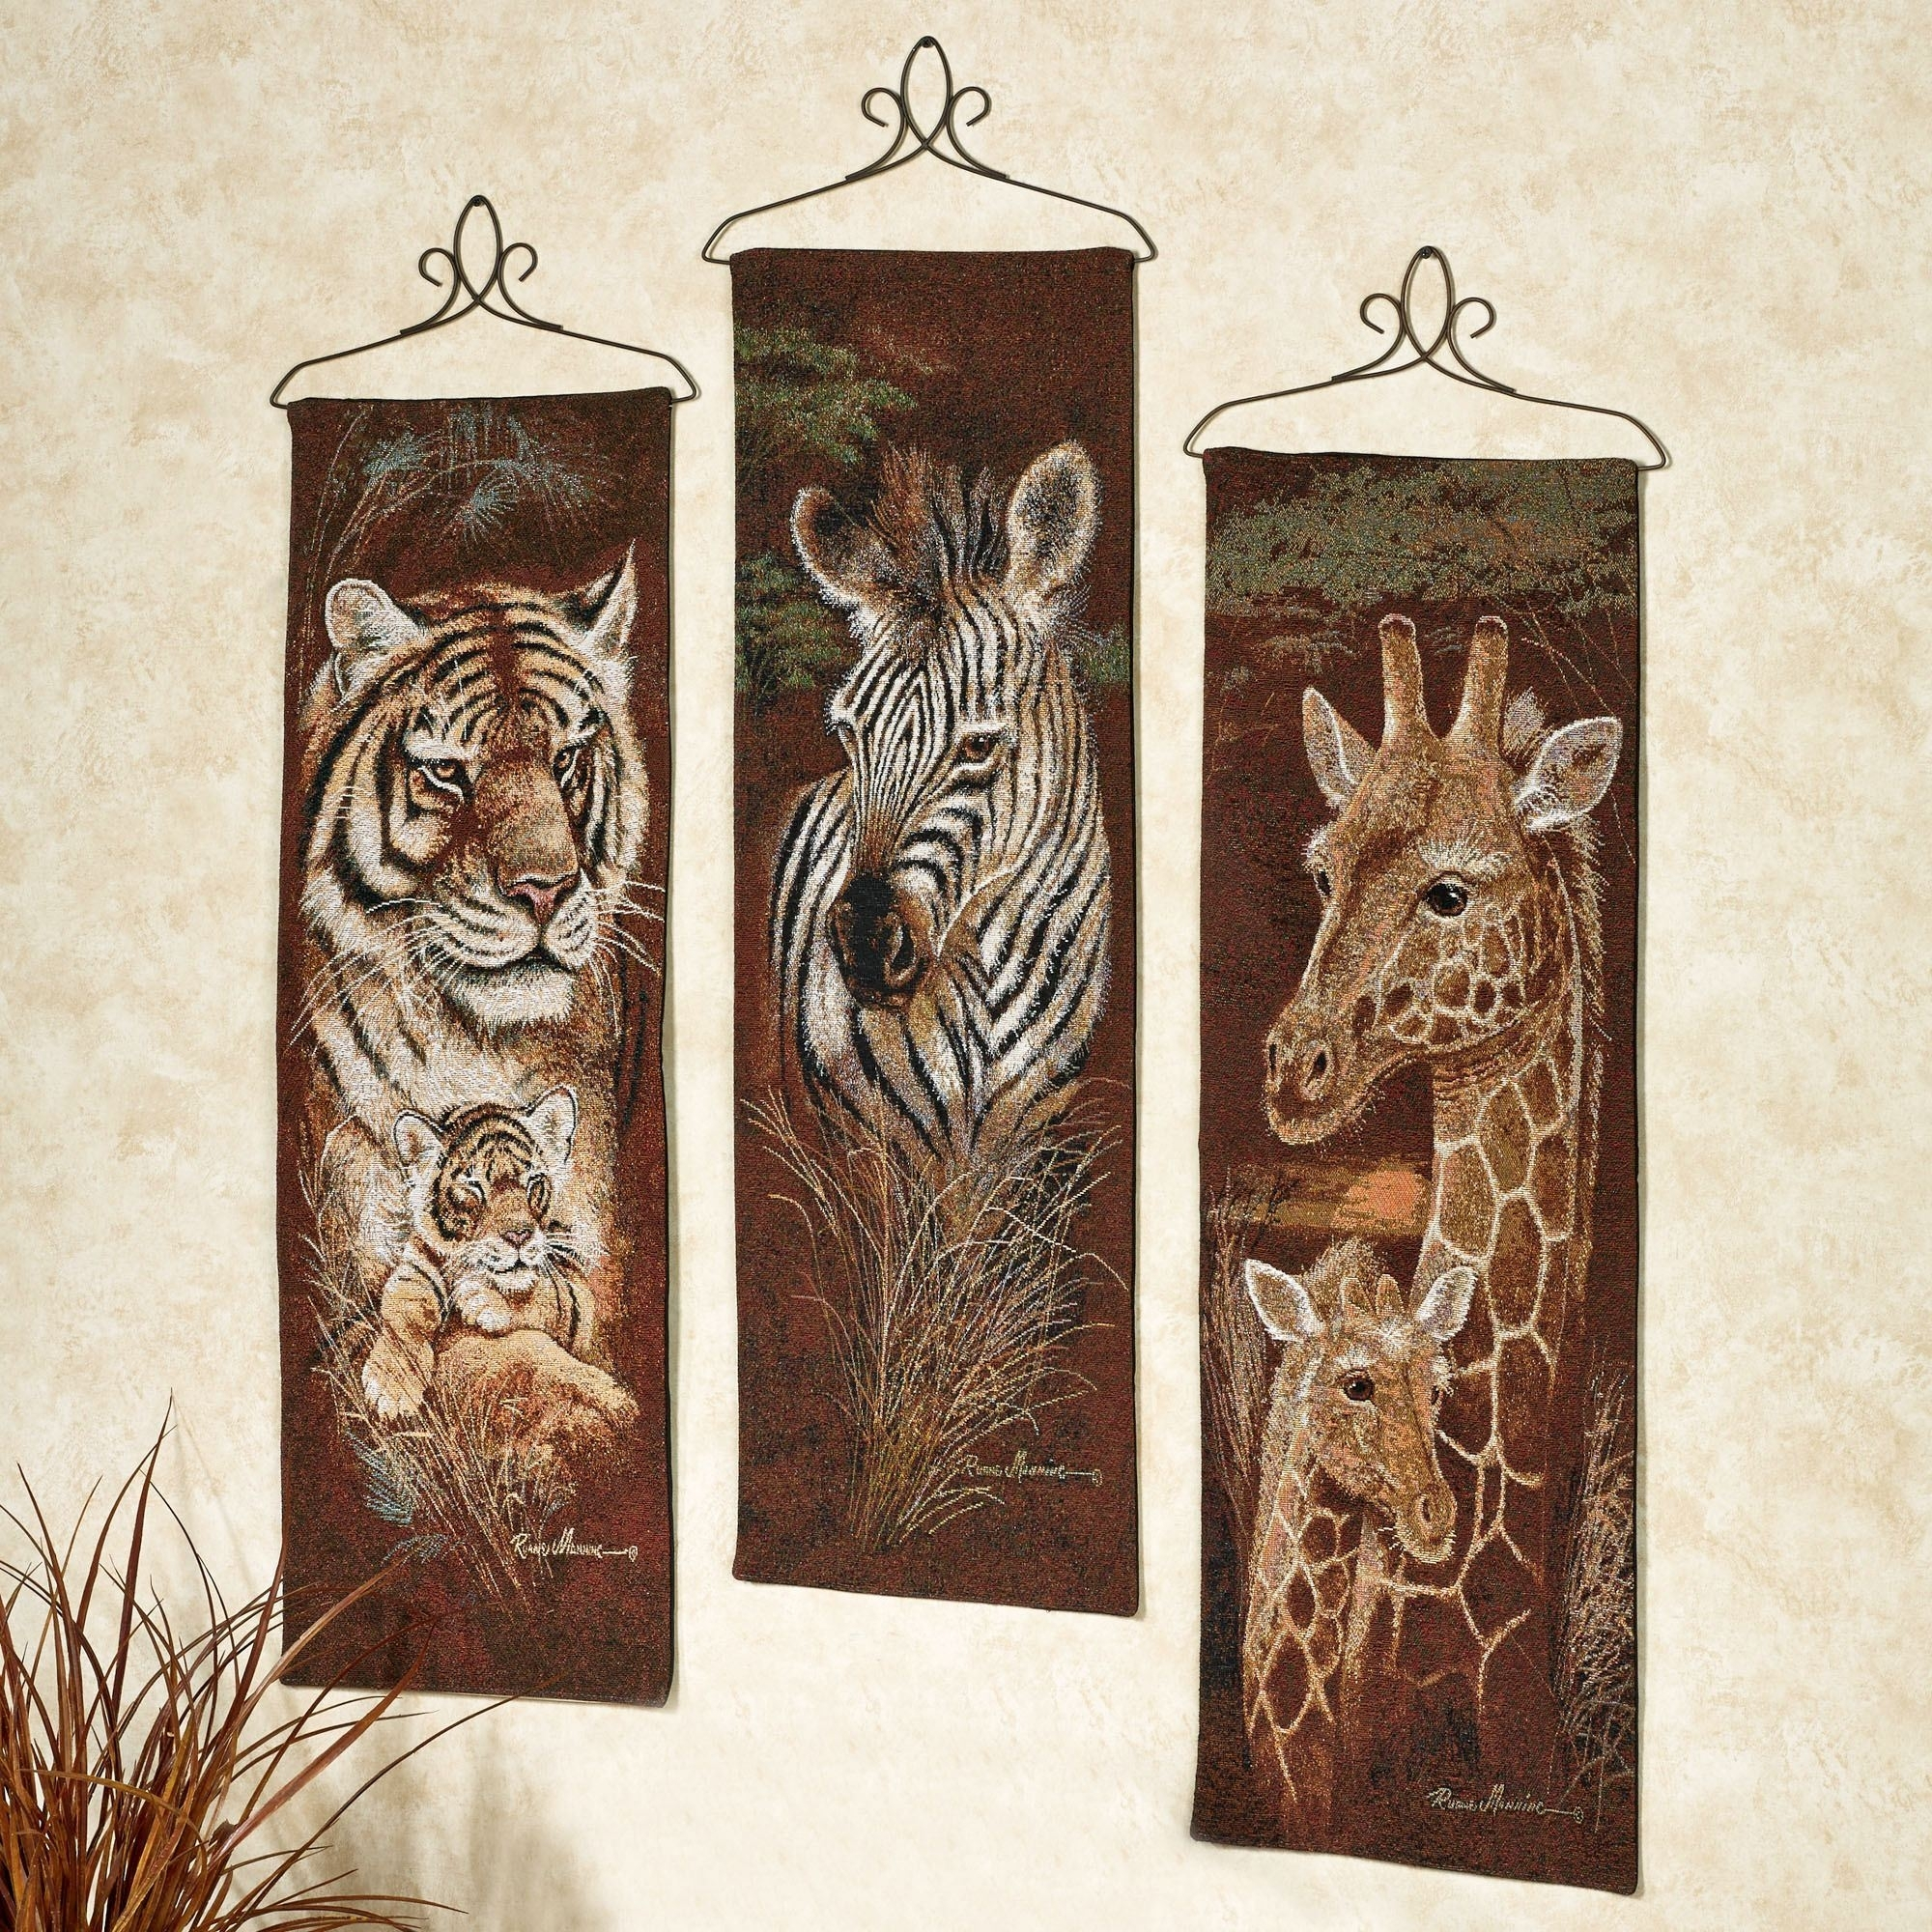 Safari Animal Wall Tapestry Panel Set Throughout Most Recently Released Safari Canvas Wall Art (Gallery 5 of 15)